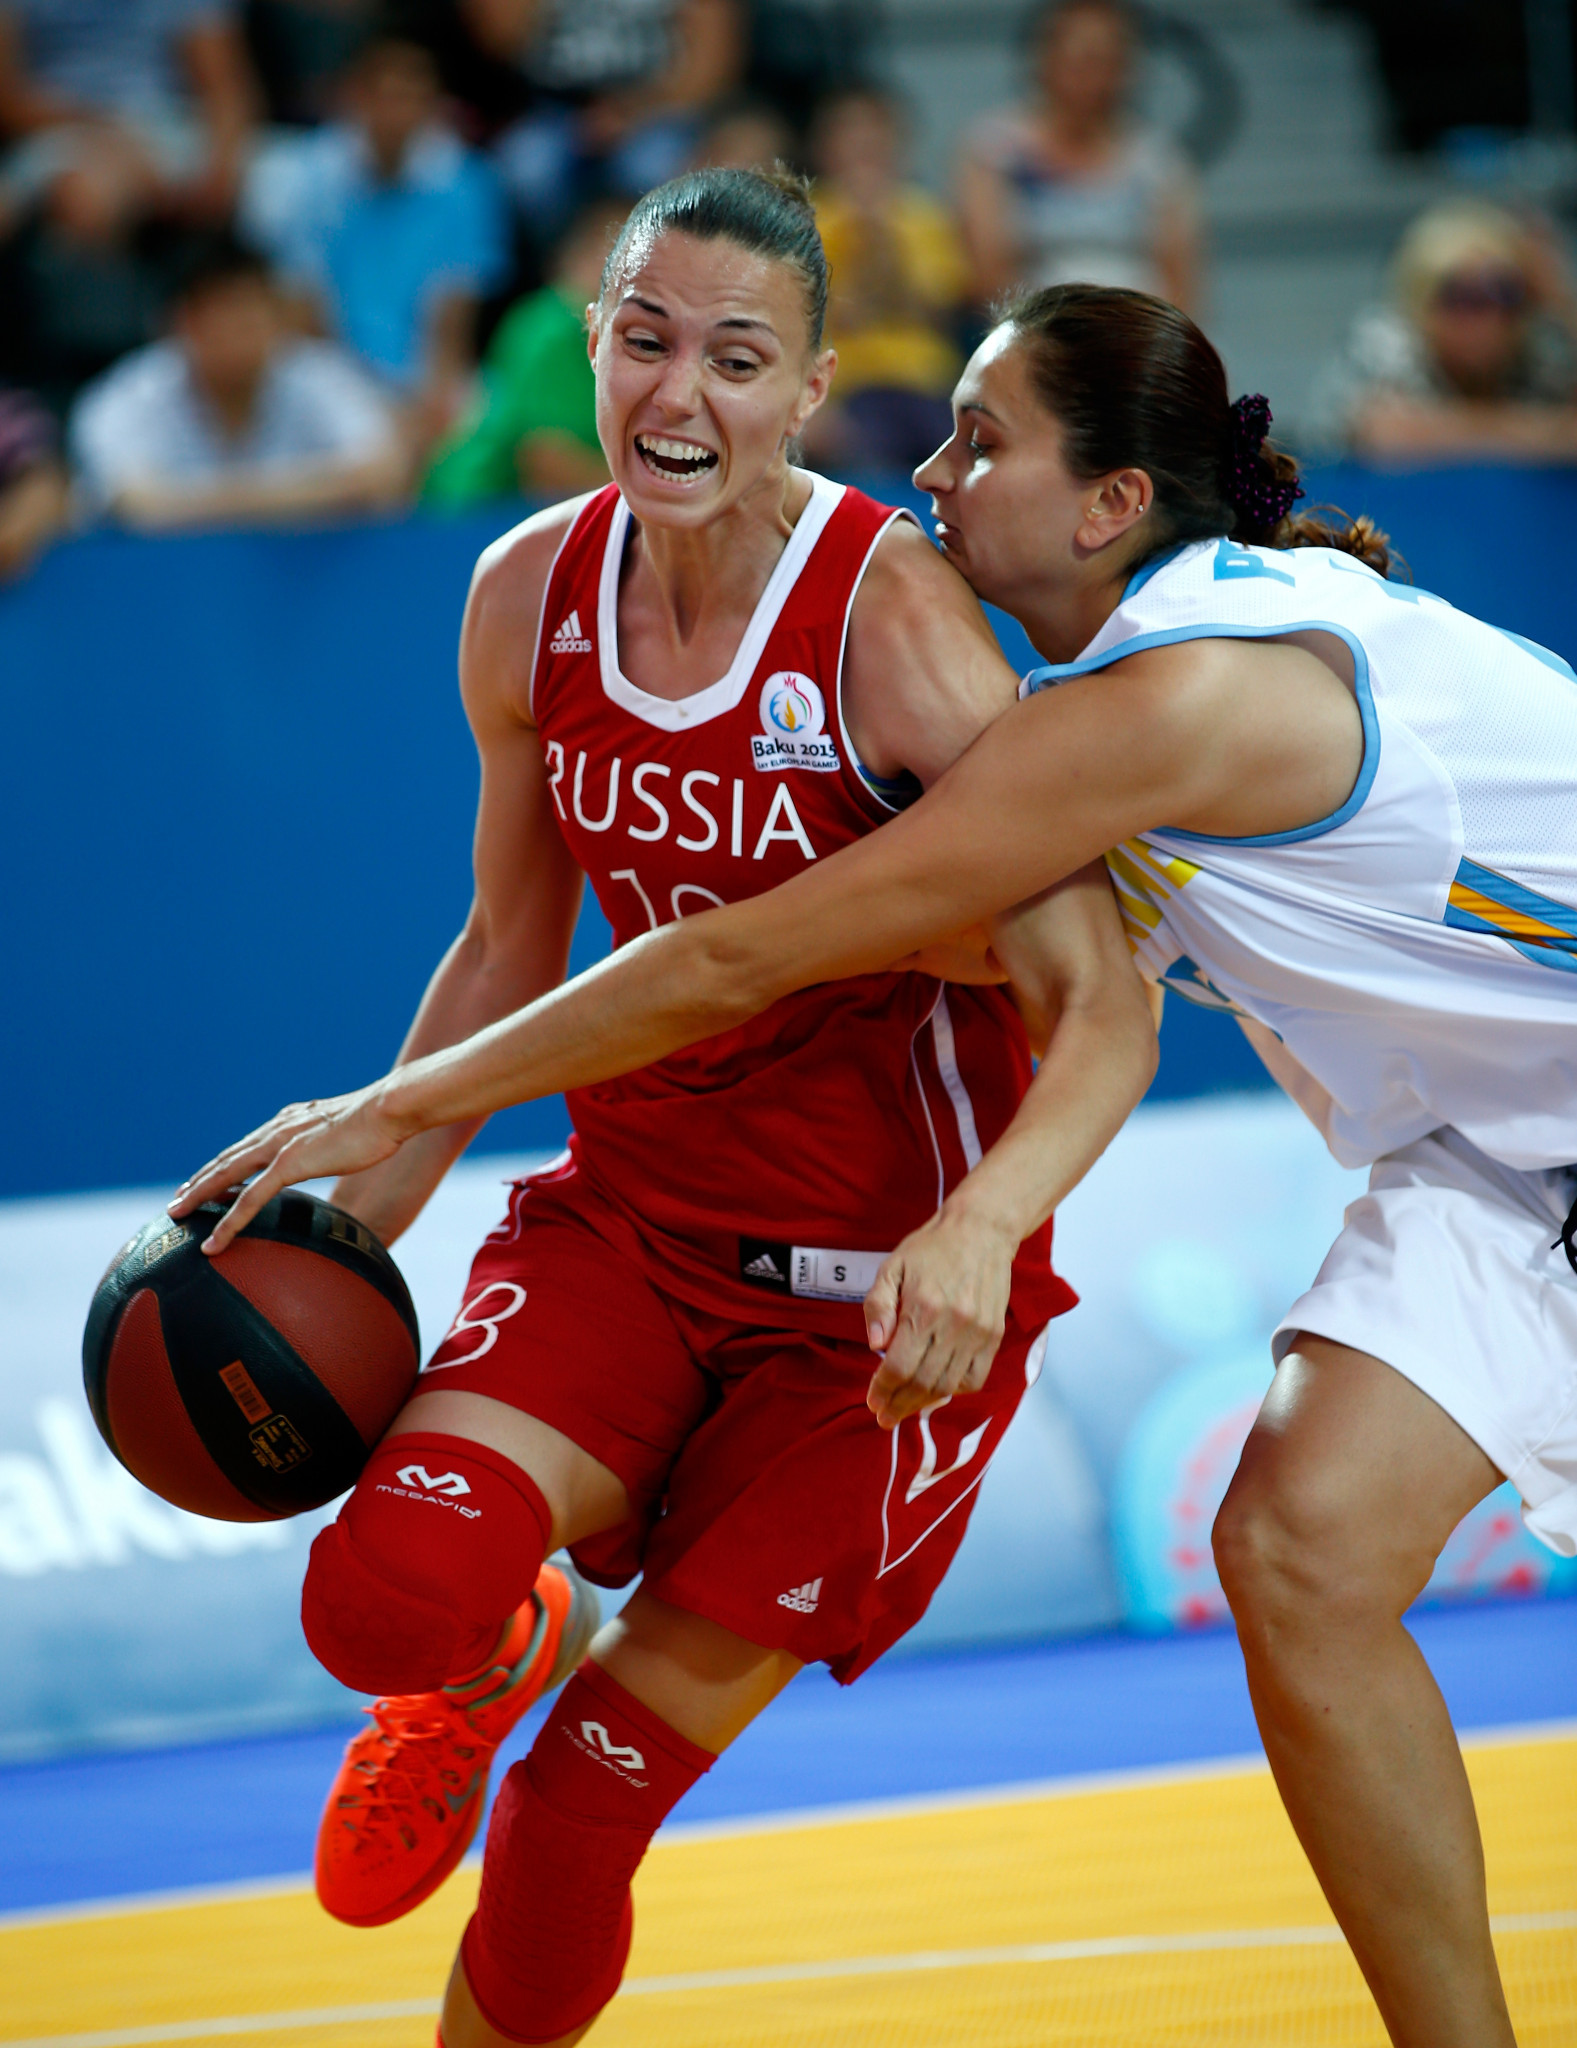 Anna Leshkovtseva, the most valuable player in 2017, will look to lead Russia to another victory in the women's tournament ©Getty Images